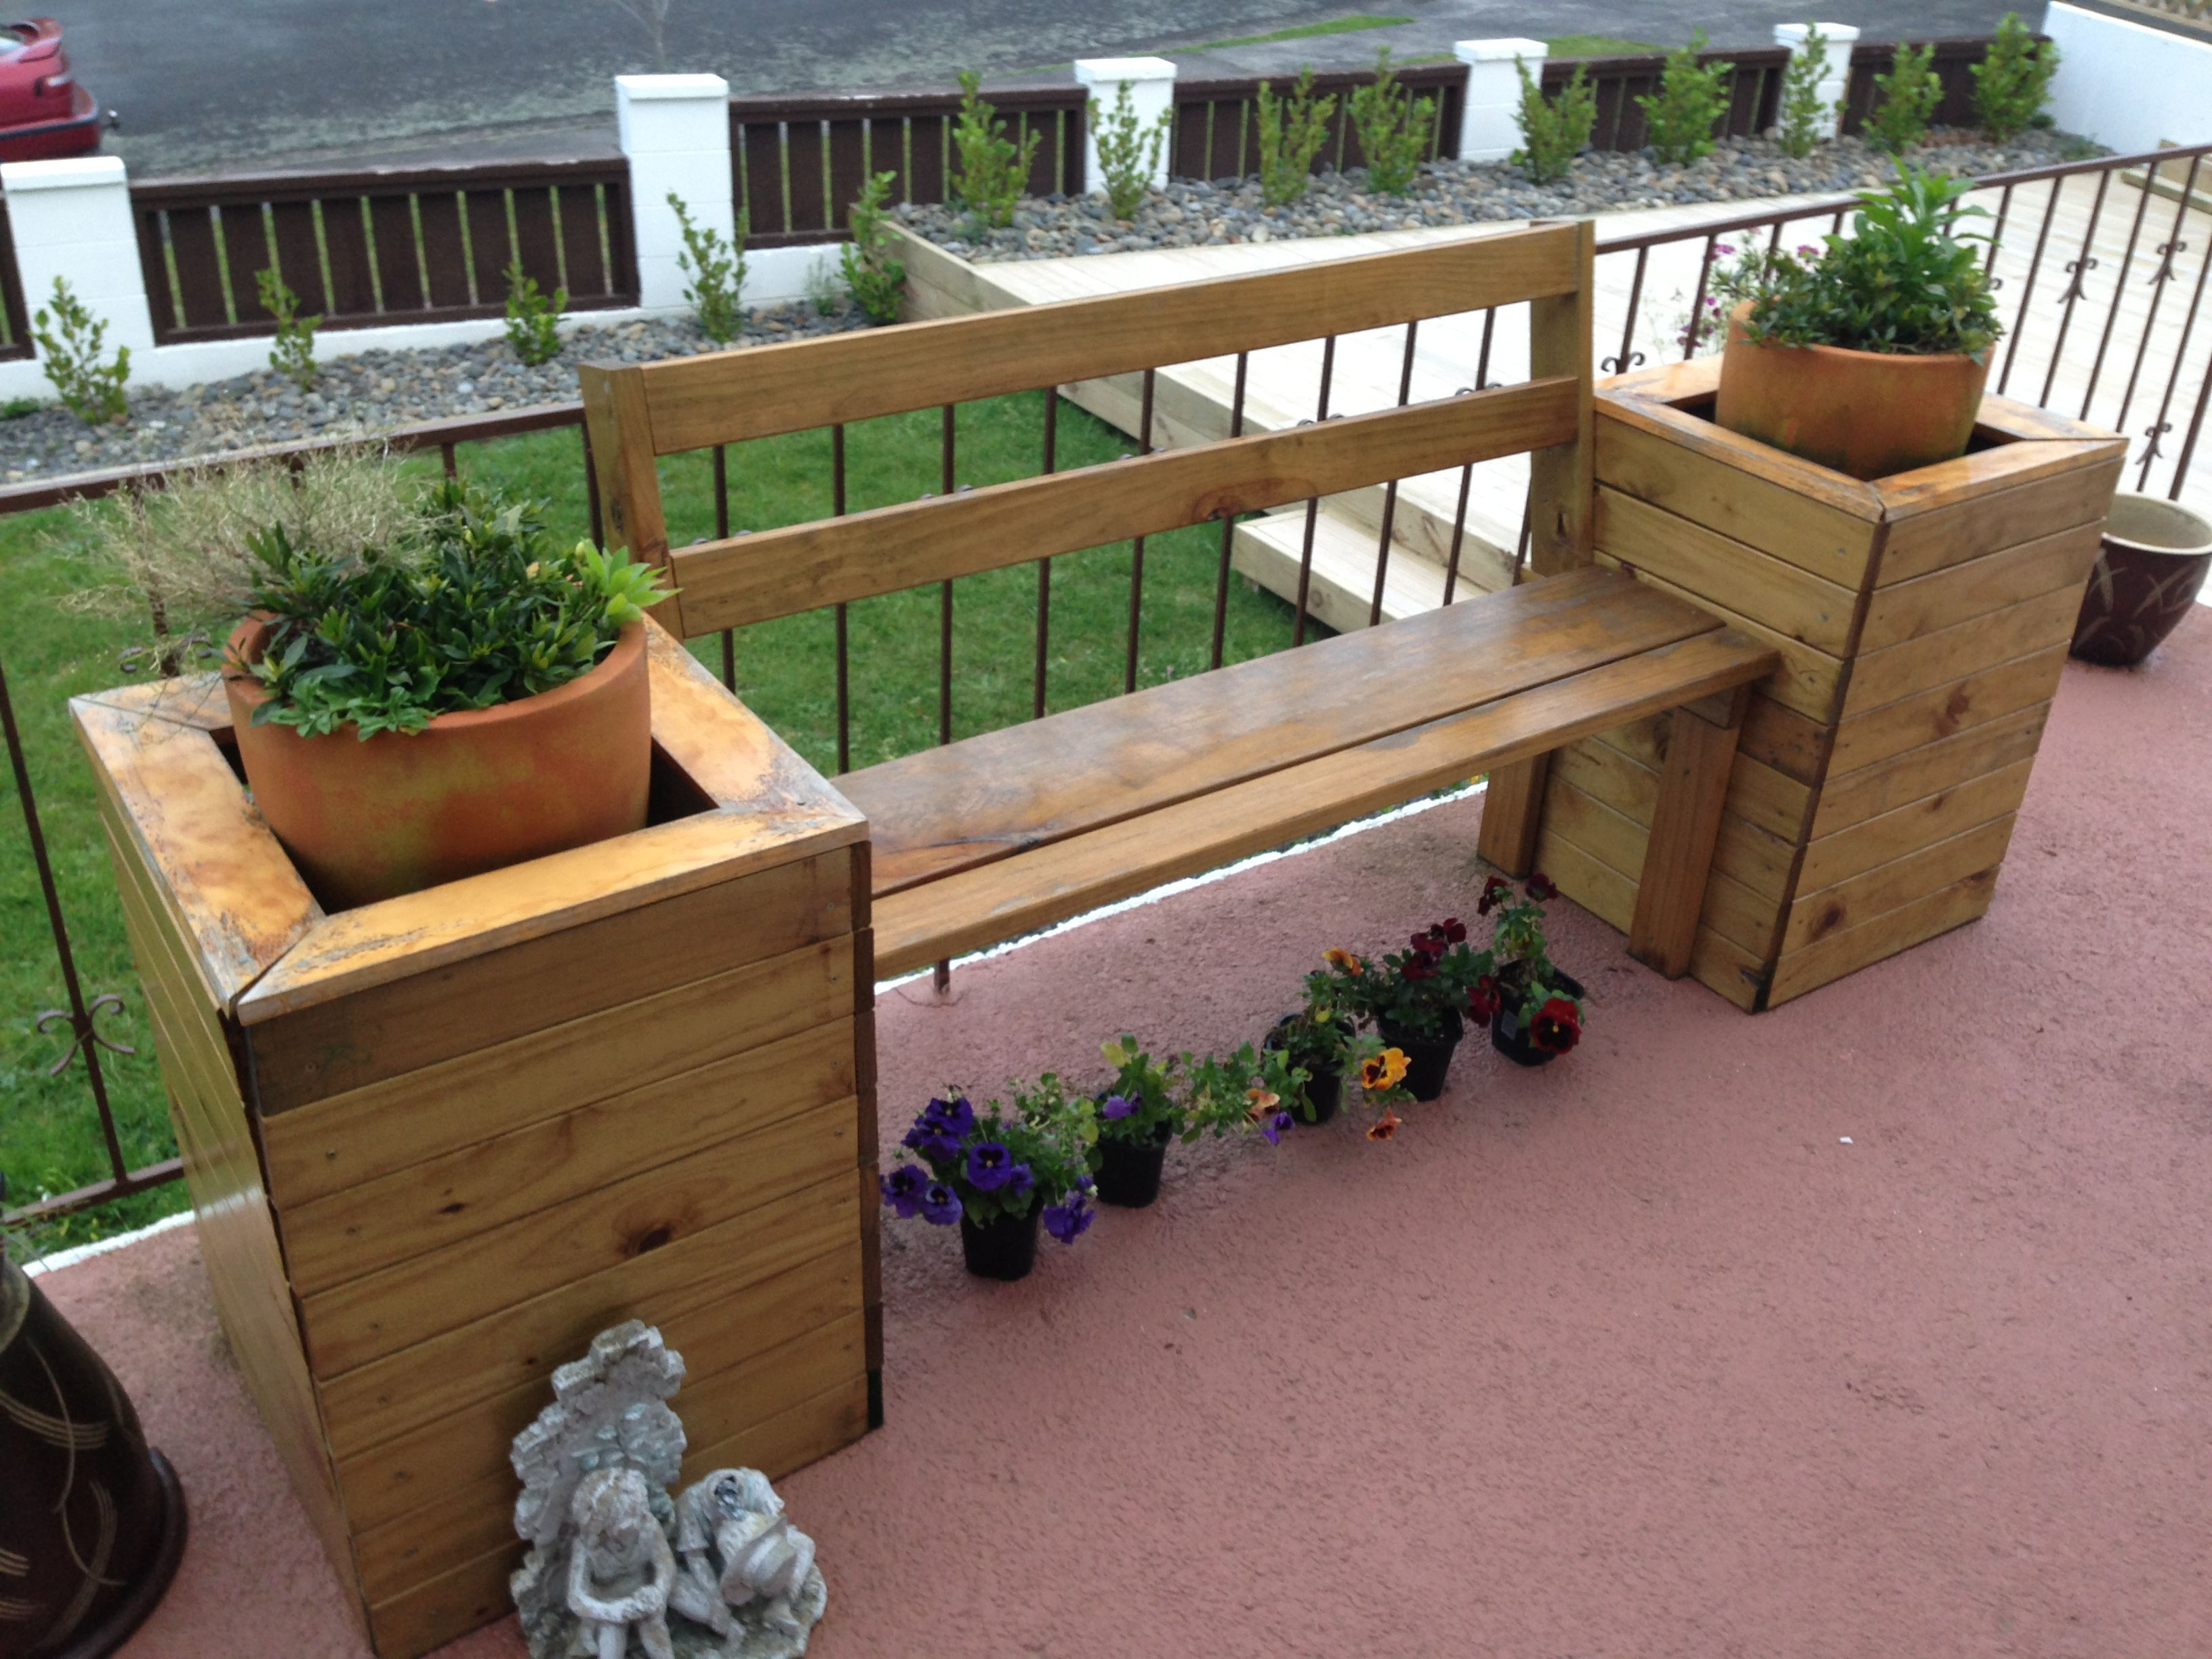 Planter Box Bench Seat For My Mum Dad Xmas 2012 Pressie Planter Boxes Backyard Patio Designs Planters